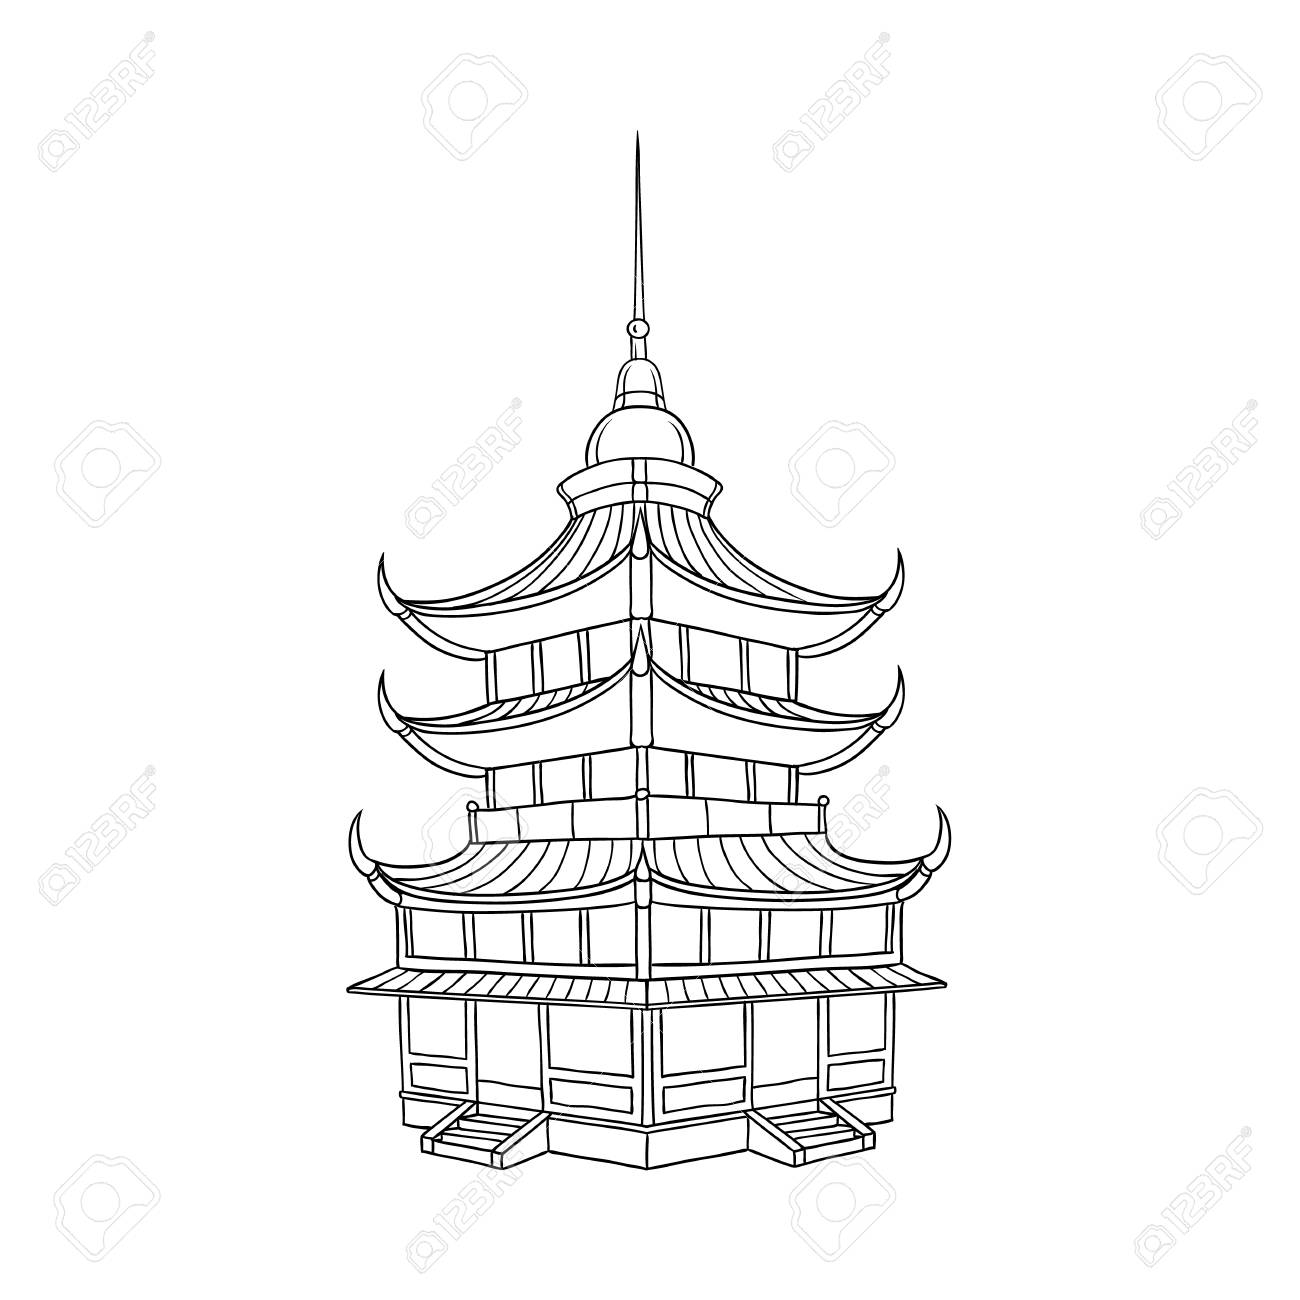 Traditional Japanese, Chinese, Asian pagoda building, flat style vector illustration isolated on white background. Traditional Japanese, Chinese, Asian pagoda building - 92134233